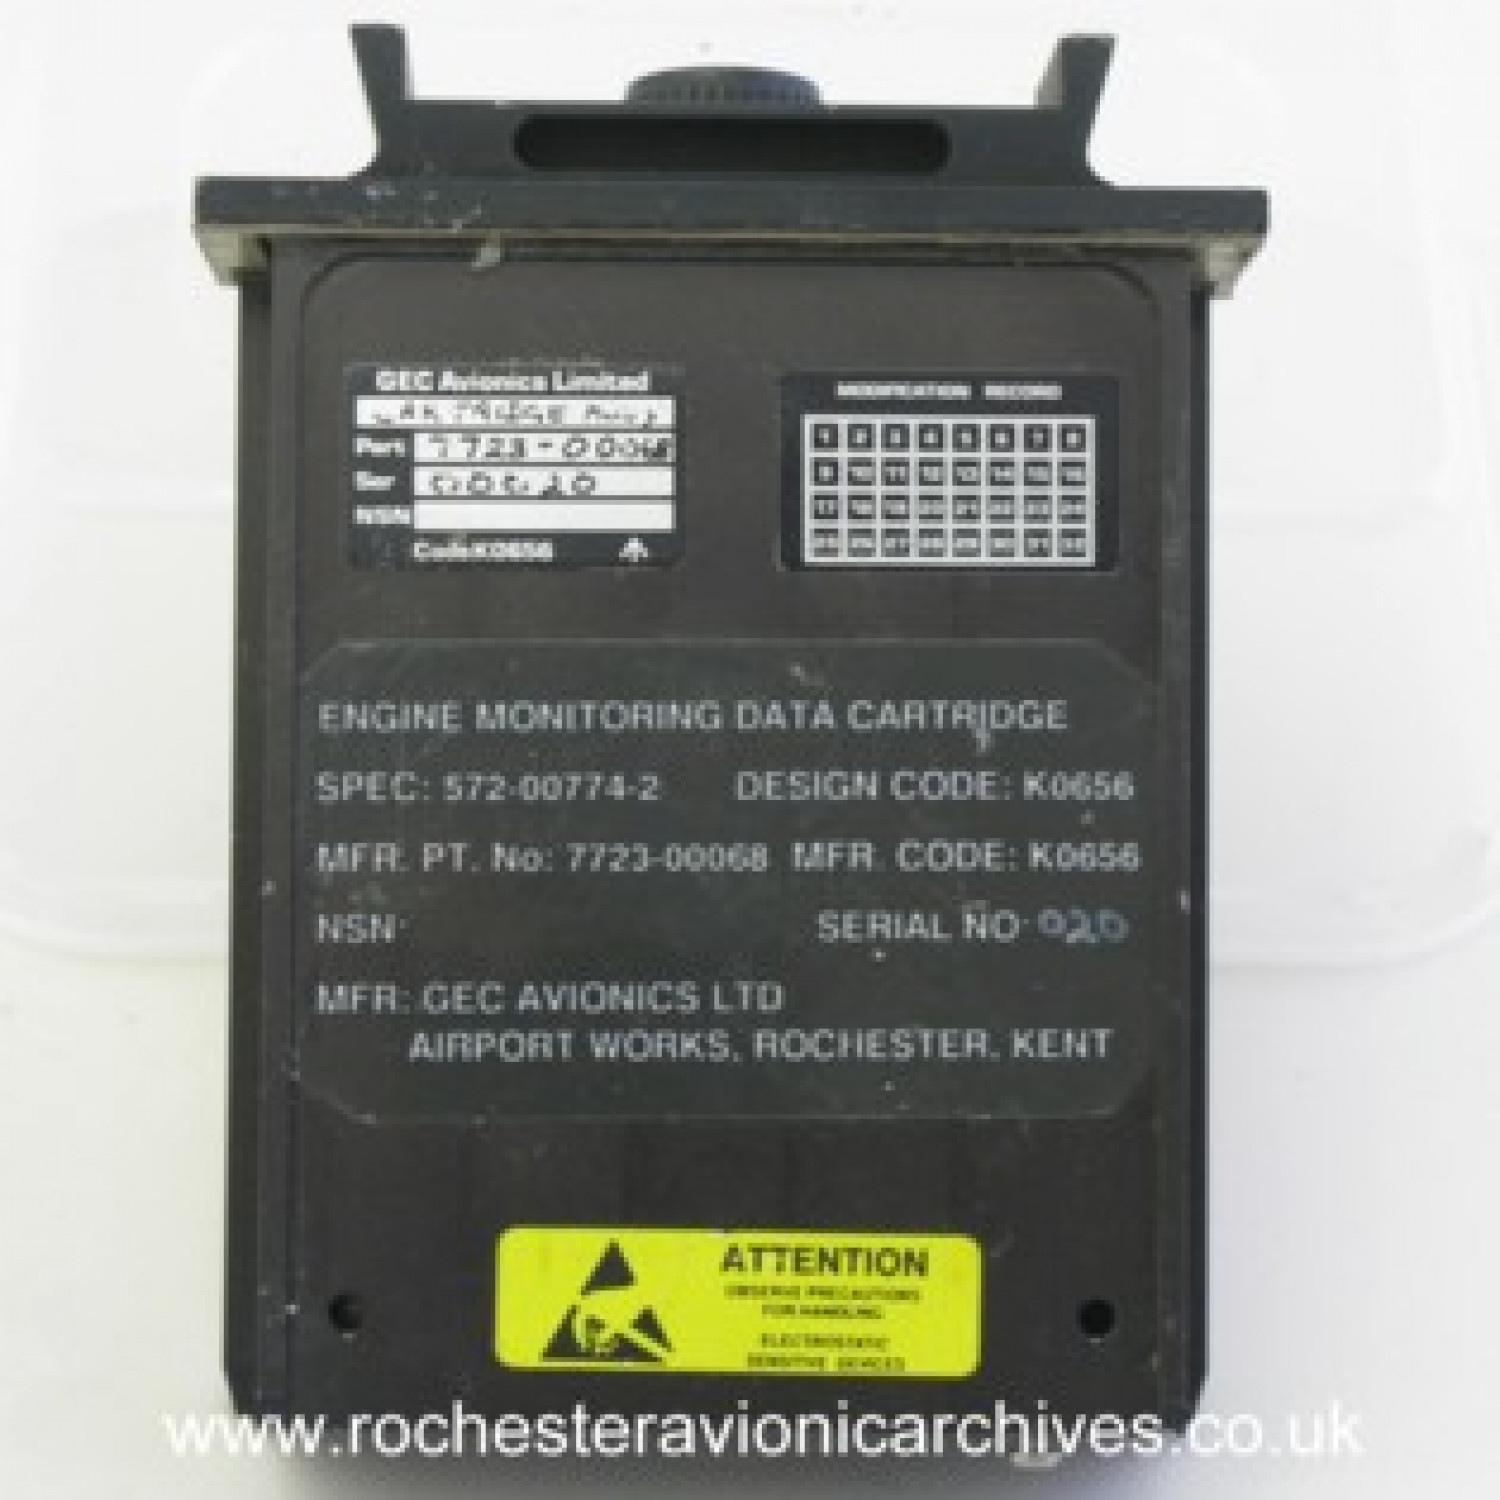 Engine Monitoring Data Cartridge